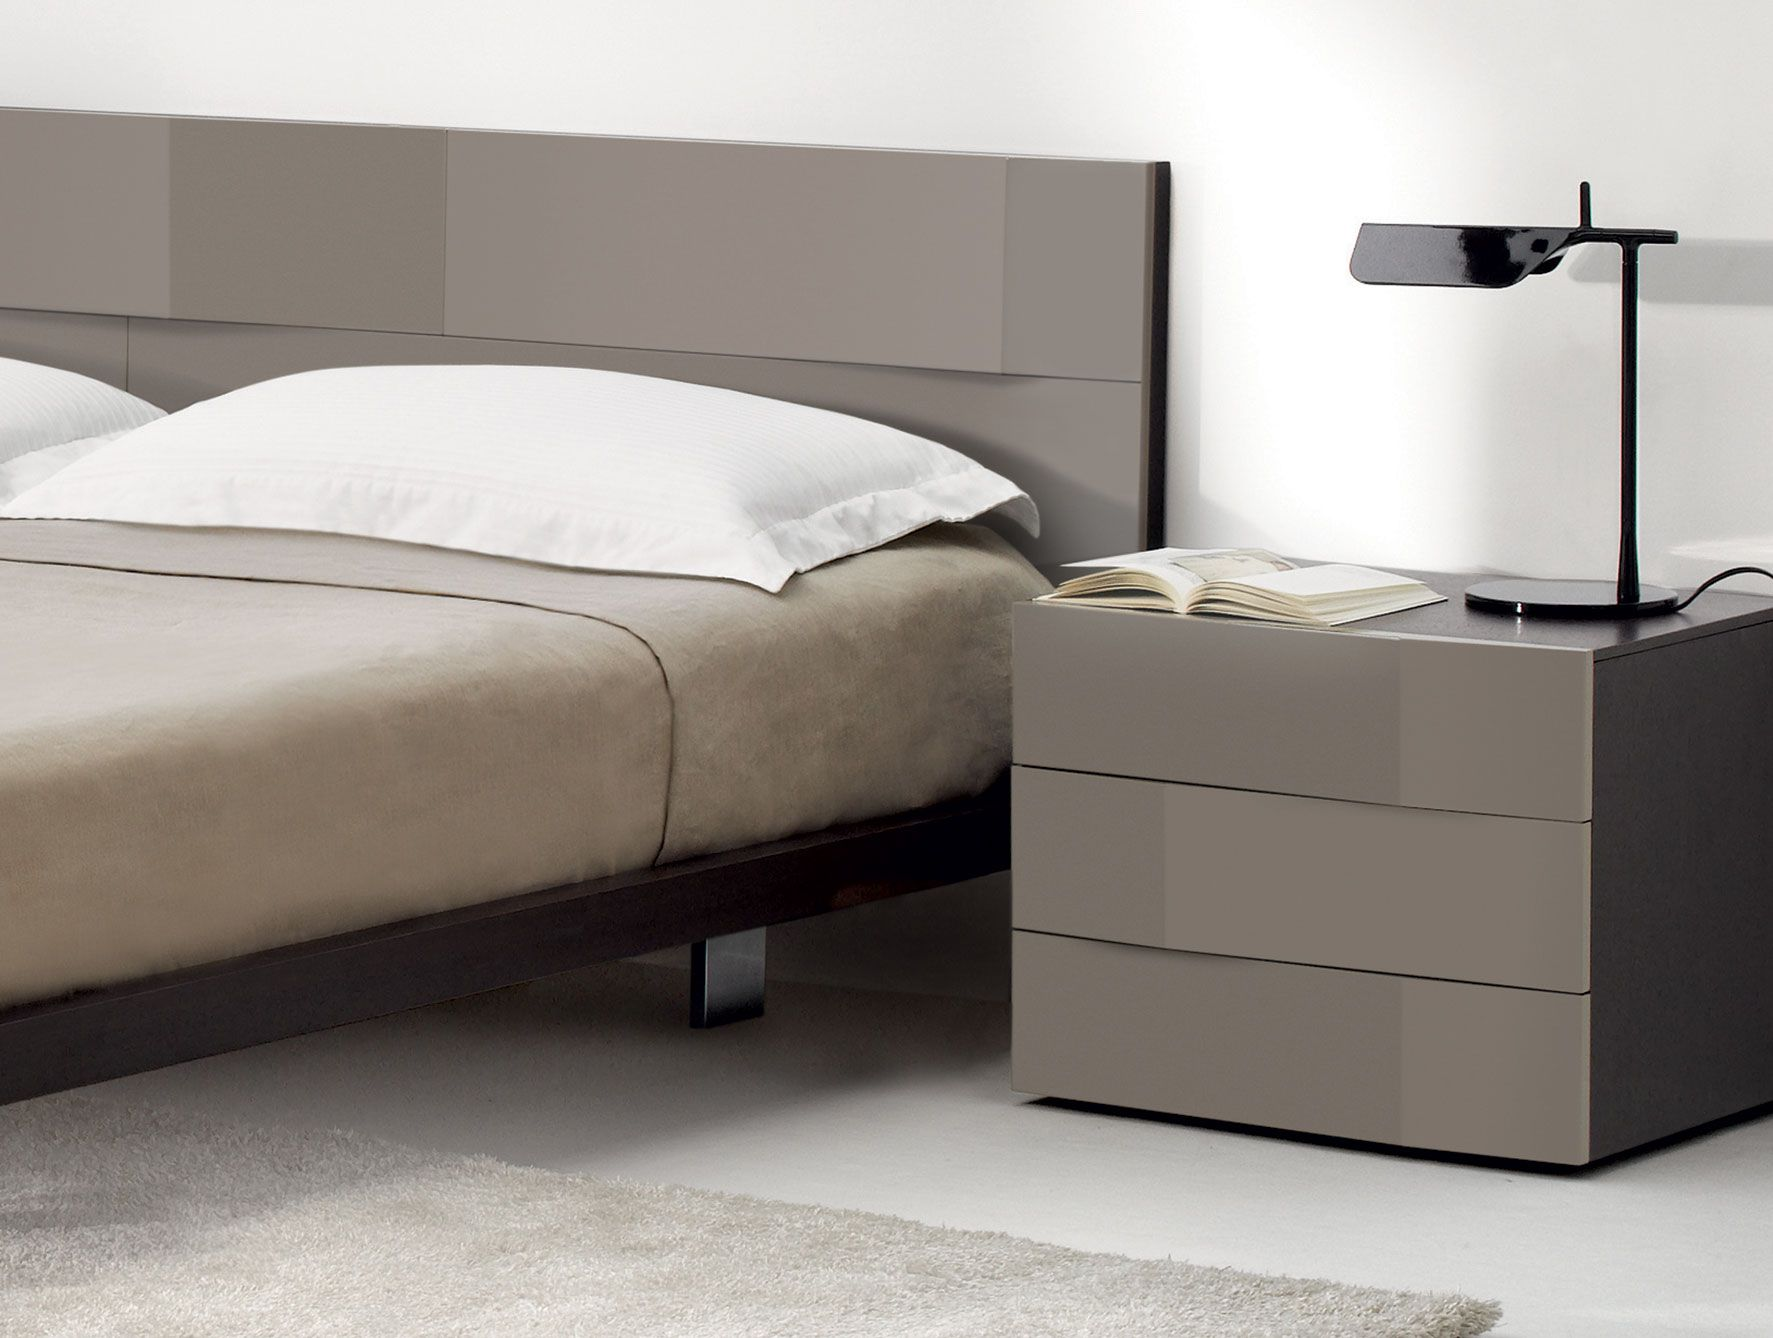 Lovely Bedside Tables 16 Imageries Contemporary Bedroom